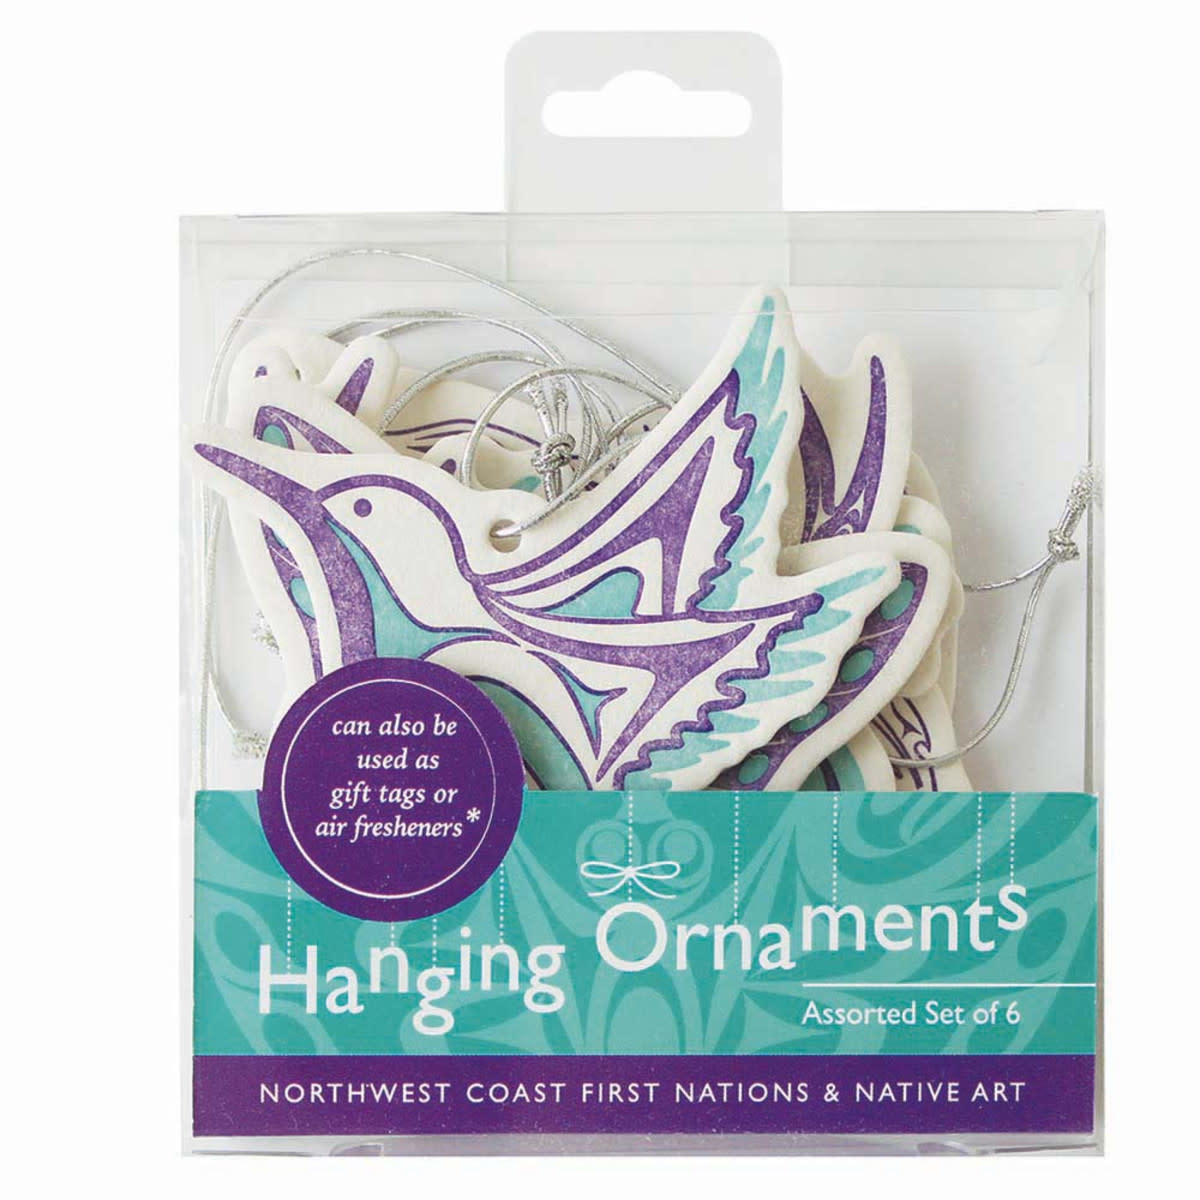 Set of 6 Hanging Ornaments- Assorted Artists-2